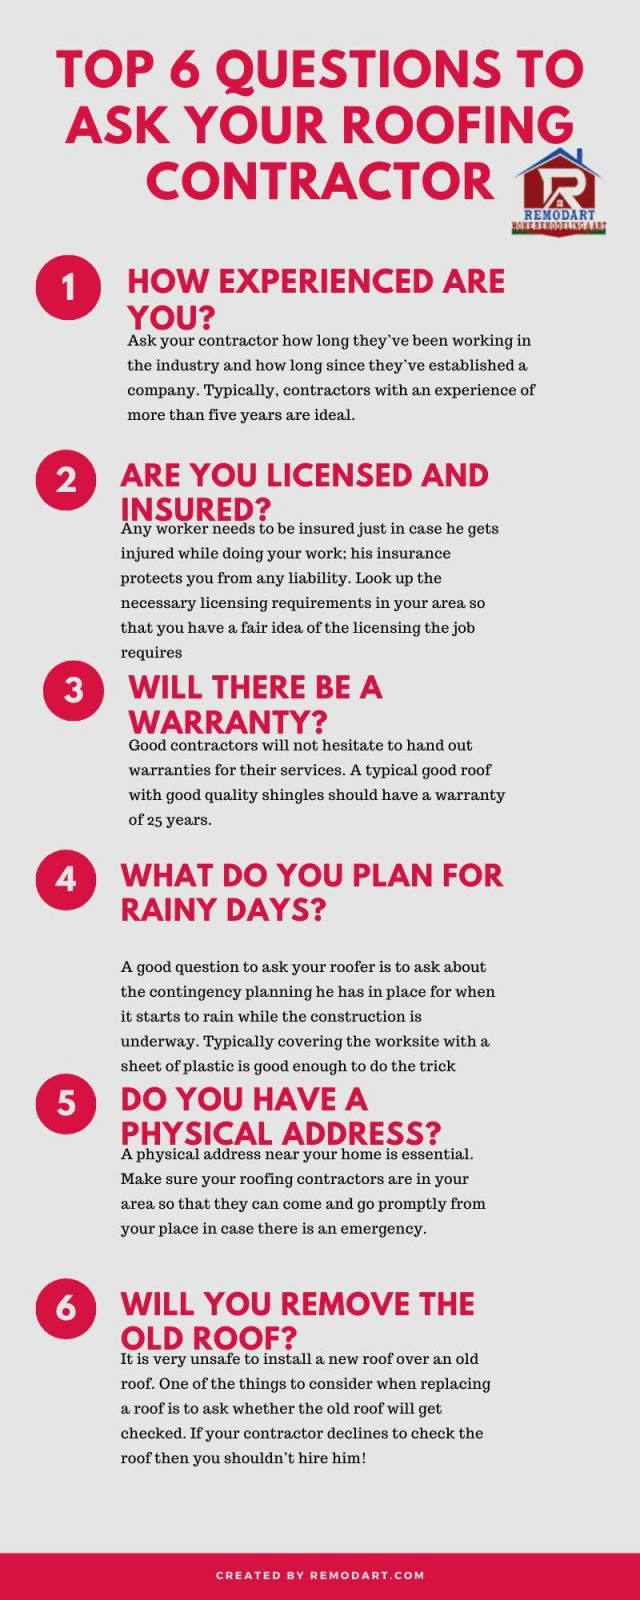 Top 6 questions to ask your roofing contractor